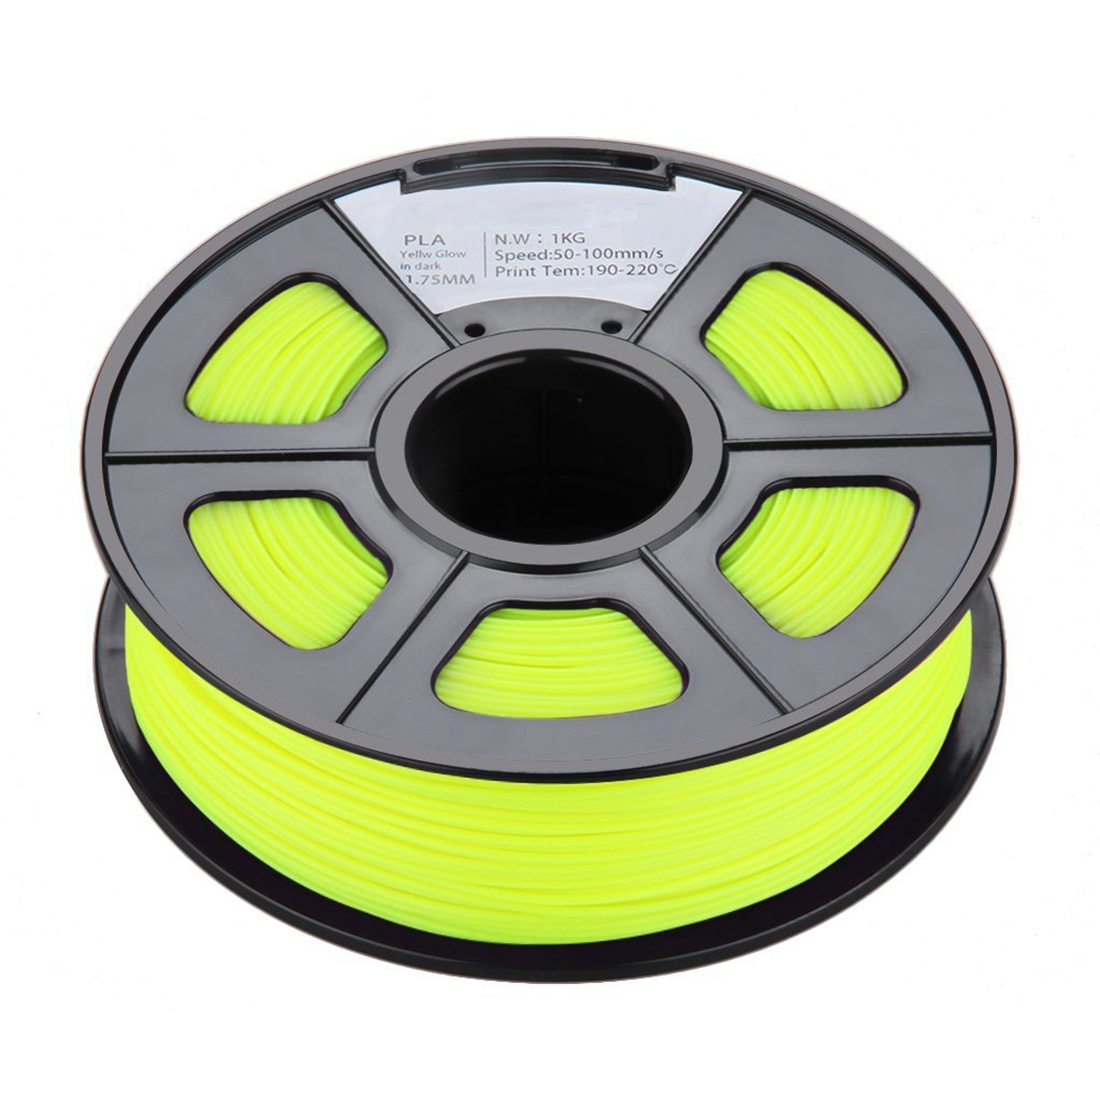 New 1.75mm Glow in the Dark PLA 3D Printer Filament - 1kg Spool (2.2 lbs) - Dimensional Accuracy +/- 0.02mm (Yellow) citilux бра citilux cl432311